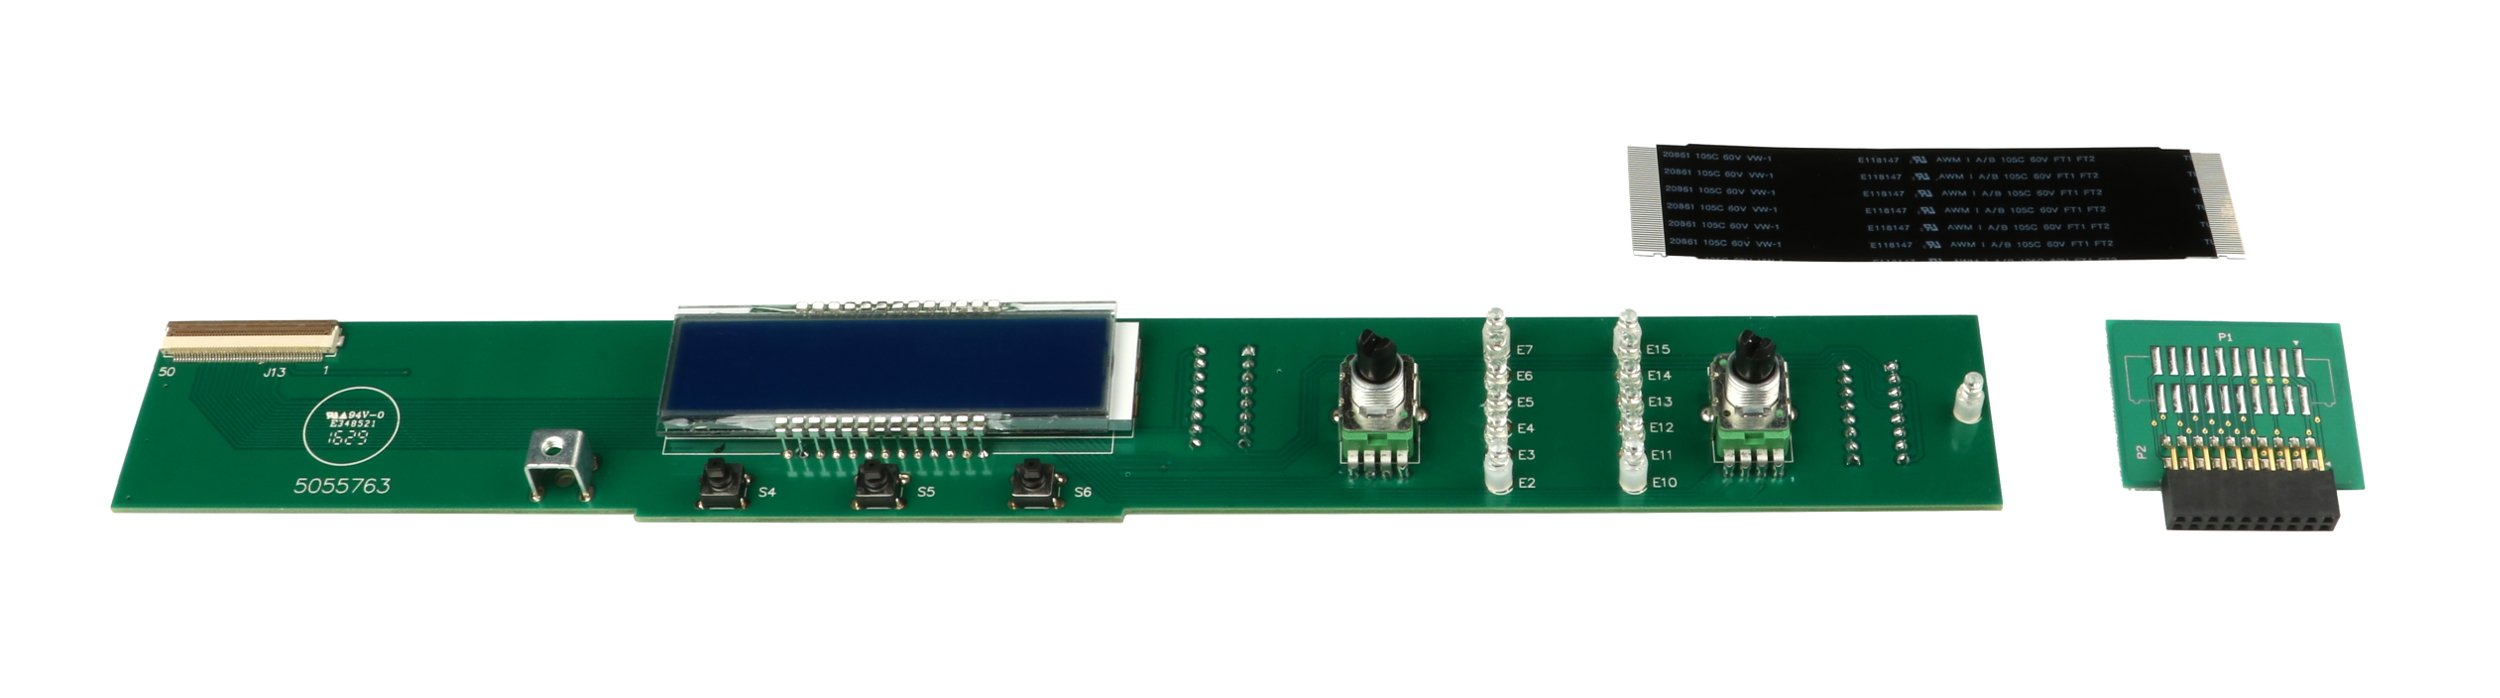 Crown 5055763  Display PCB Assembly for CDi1000 5055763